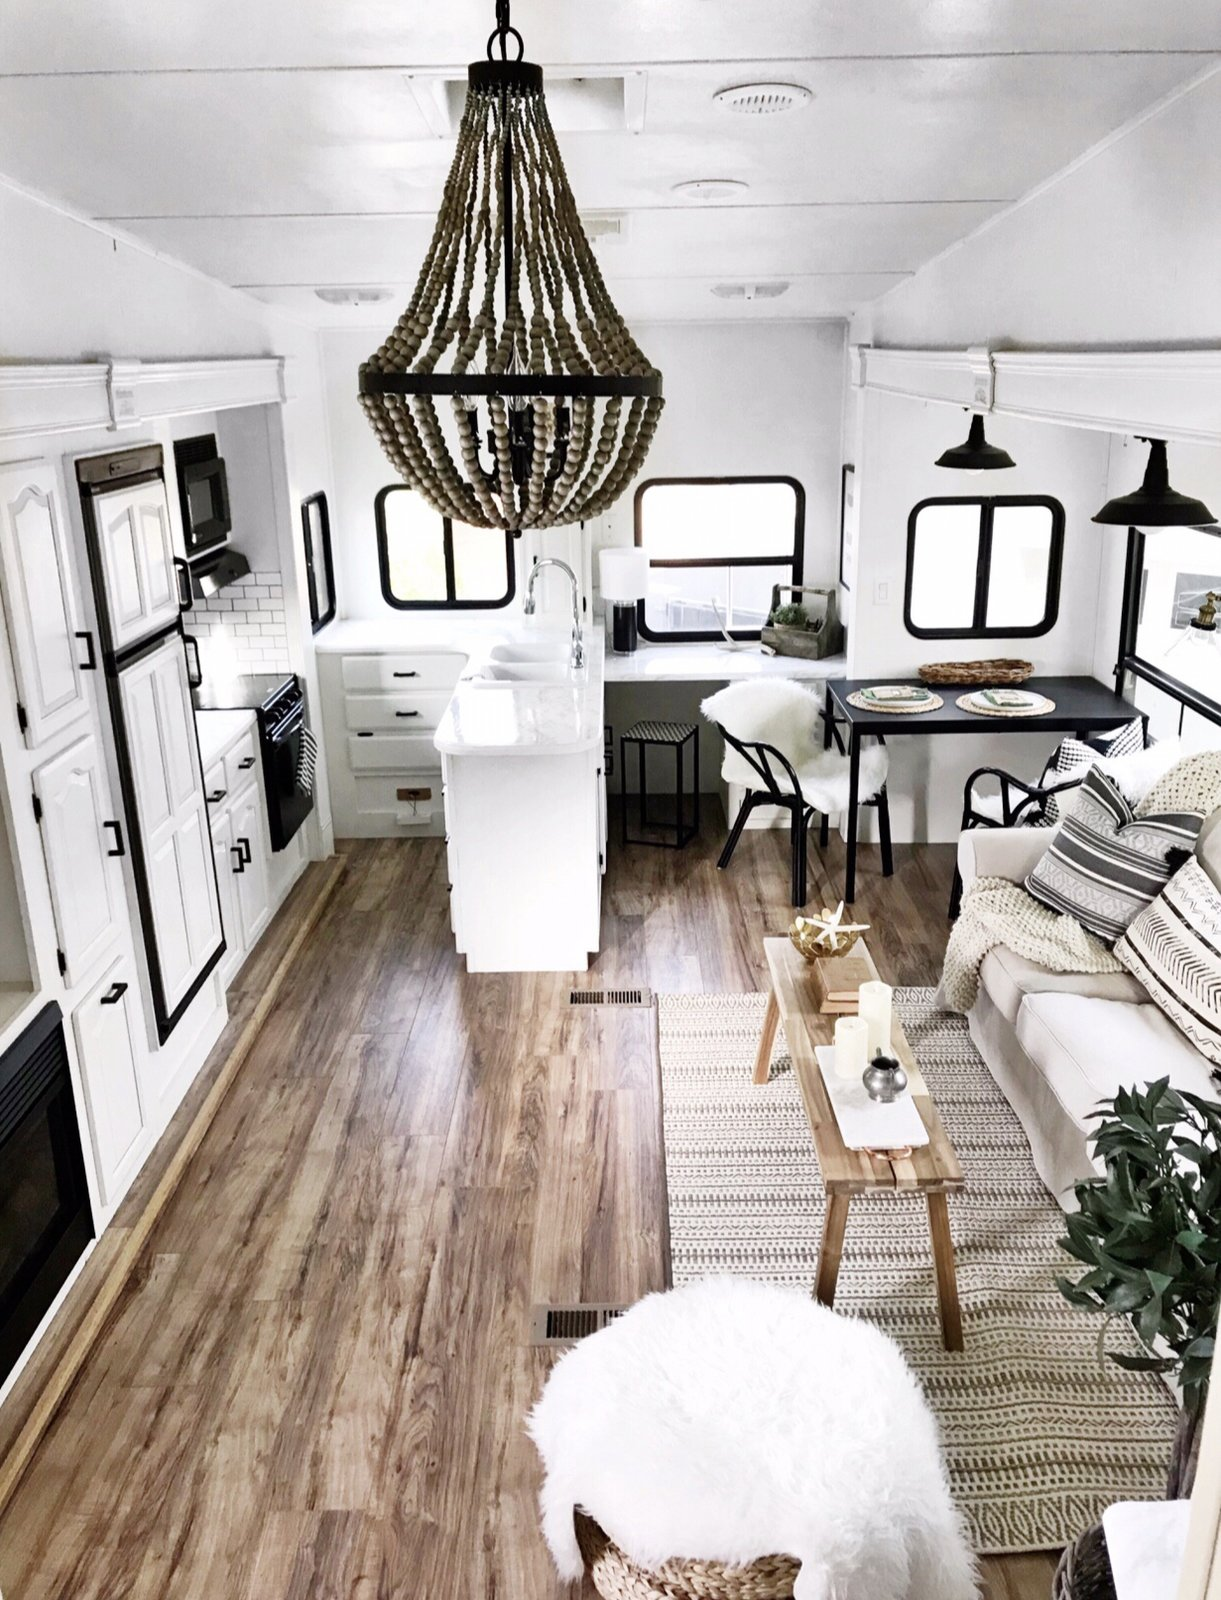 Wood details and a simple white and black color scheme give the RV's interior a bright, modern Scandinavian feel.